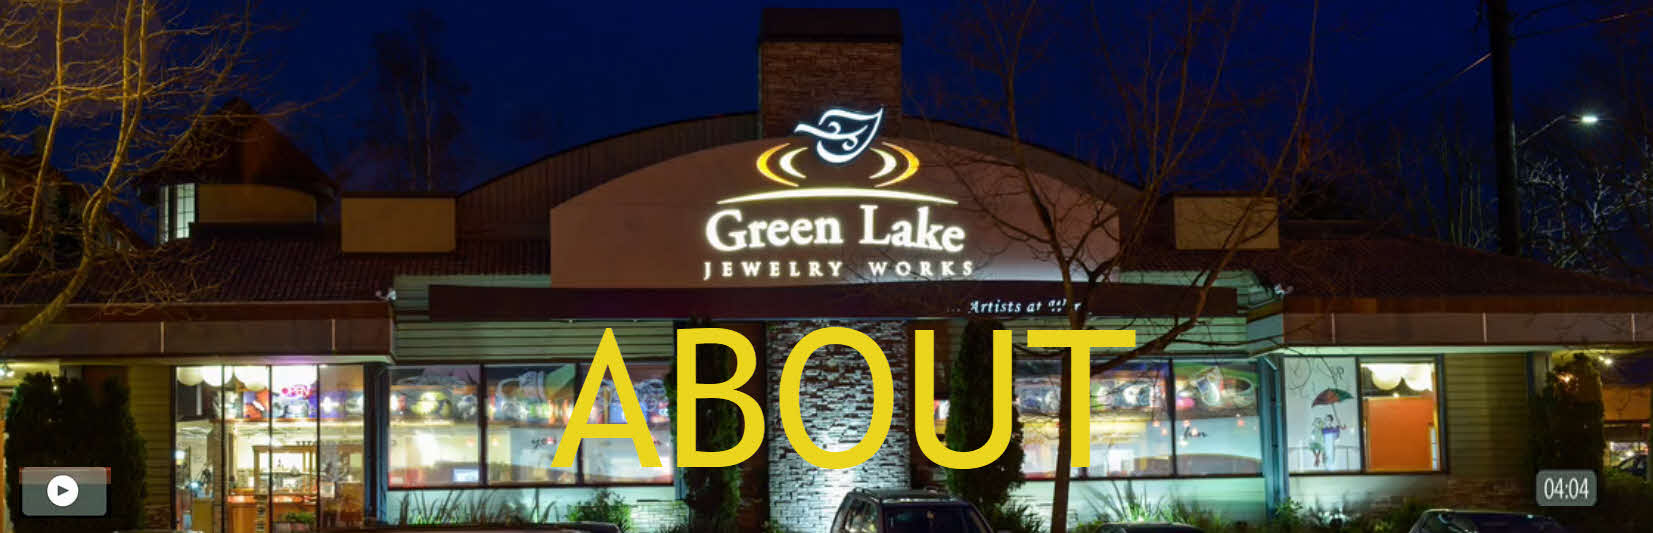 about-greenlake-jewelry